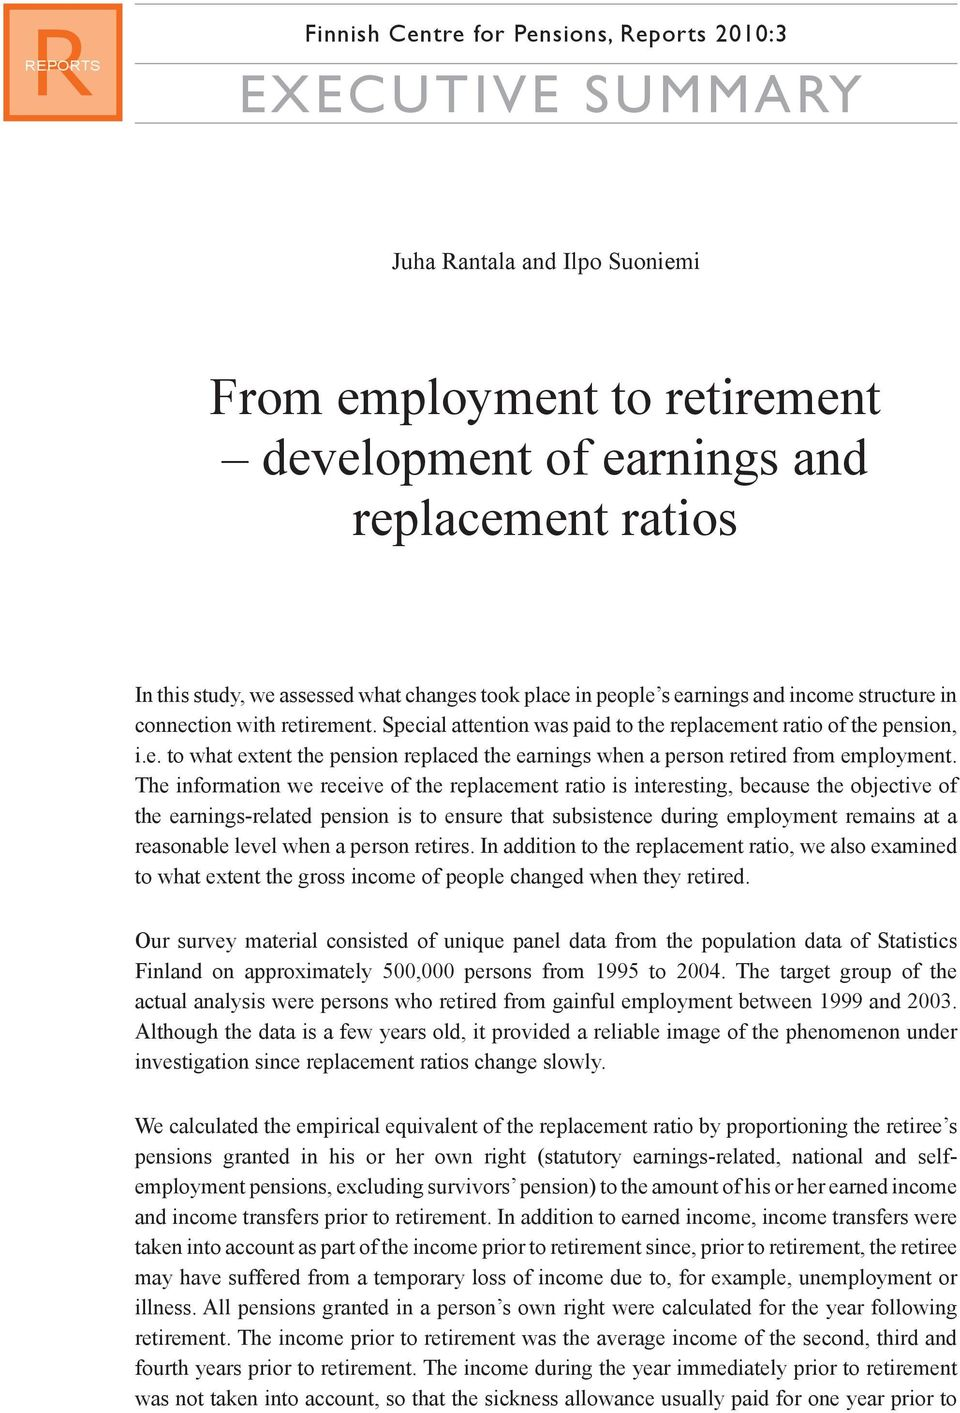 The information we receive of the replacement ratio is interesting, because the objective of the earnings-related pension is to ensure that subsistence during employment remains at a reasonable level